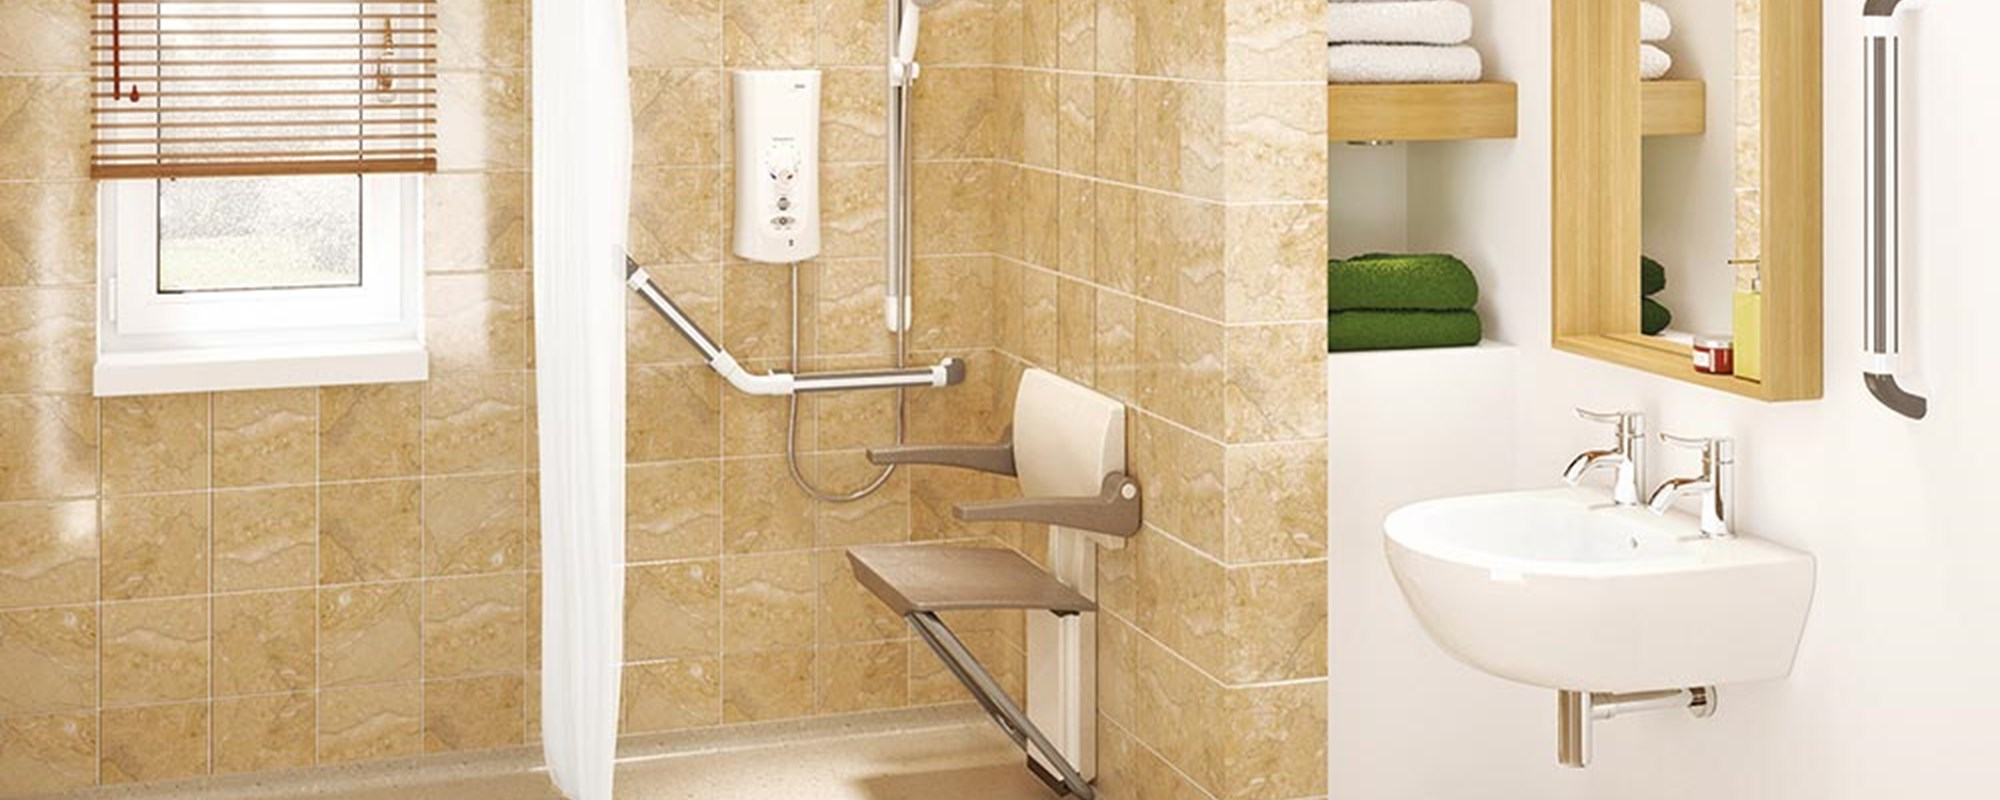 shower curtain rail and shower seat assisted living